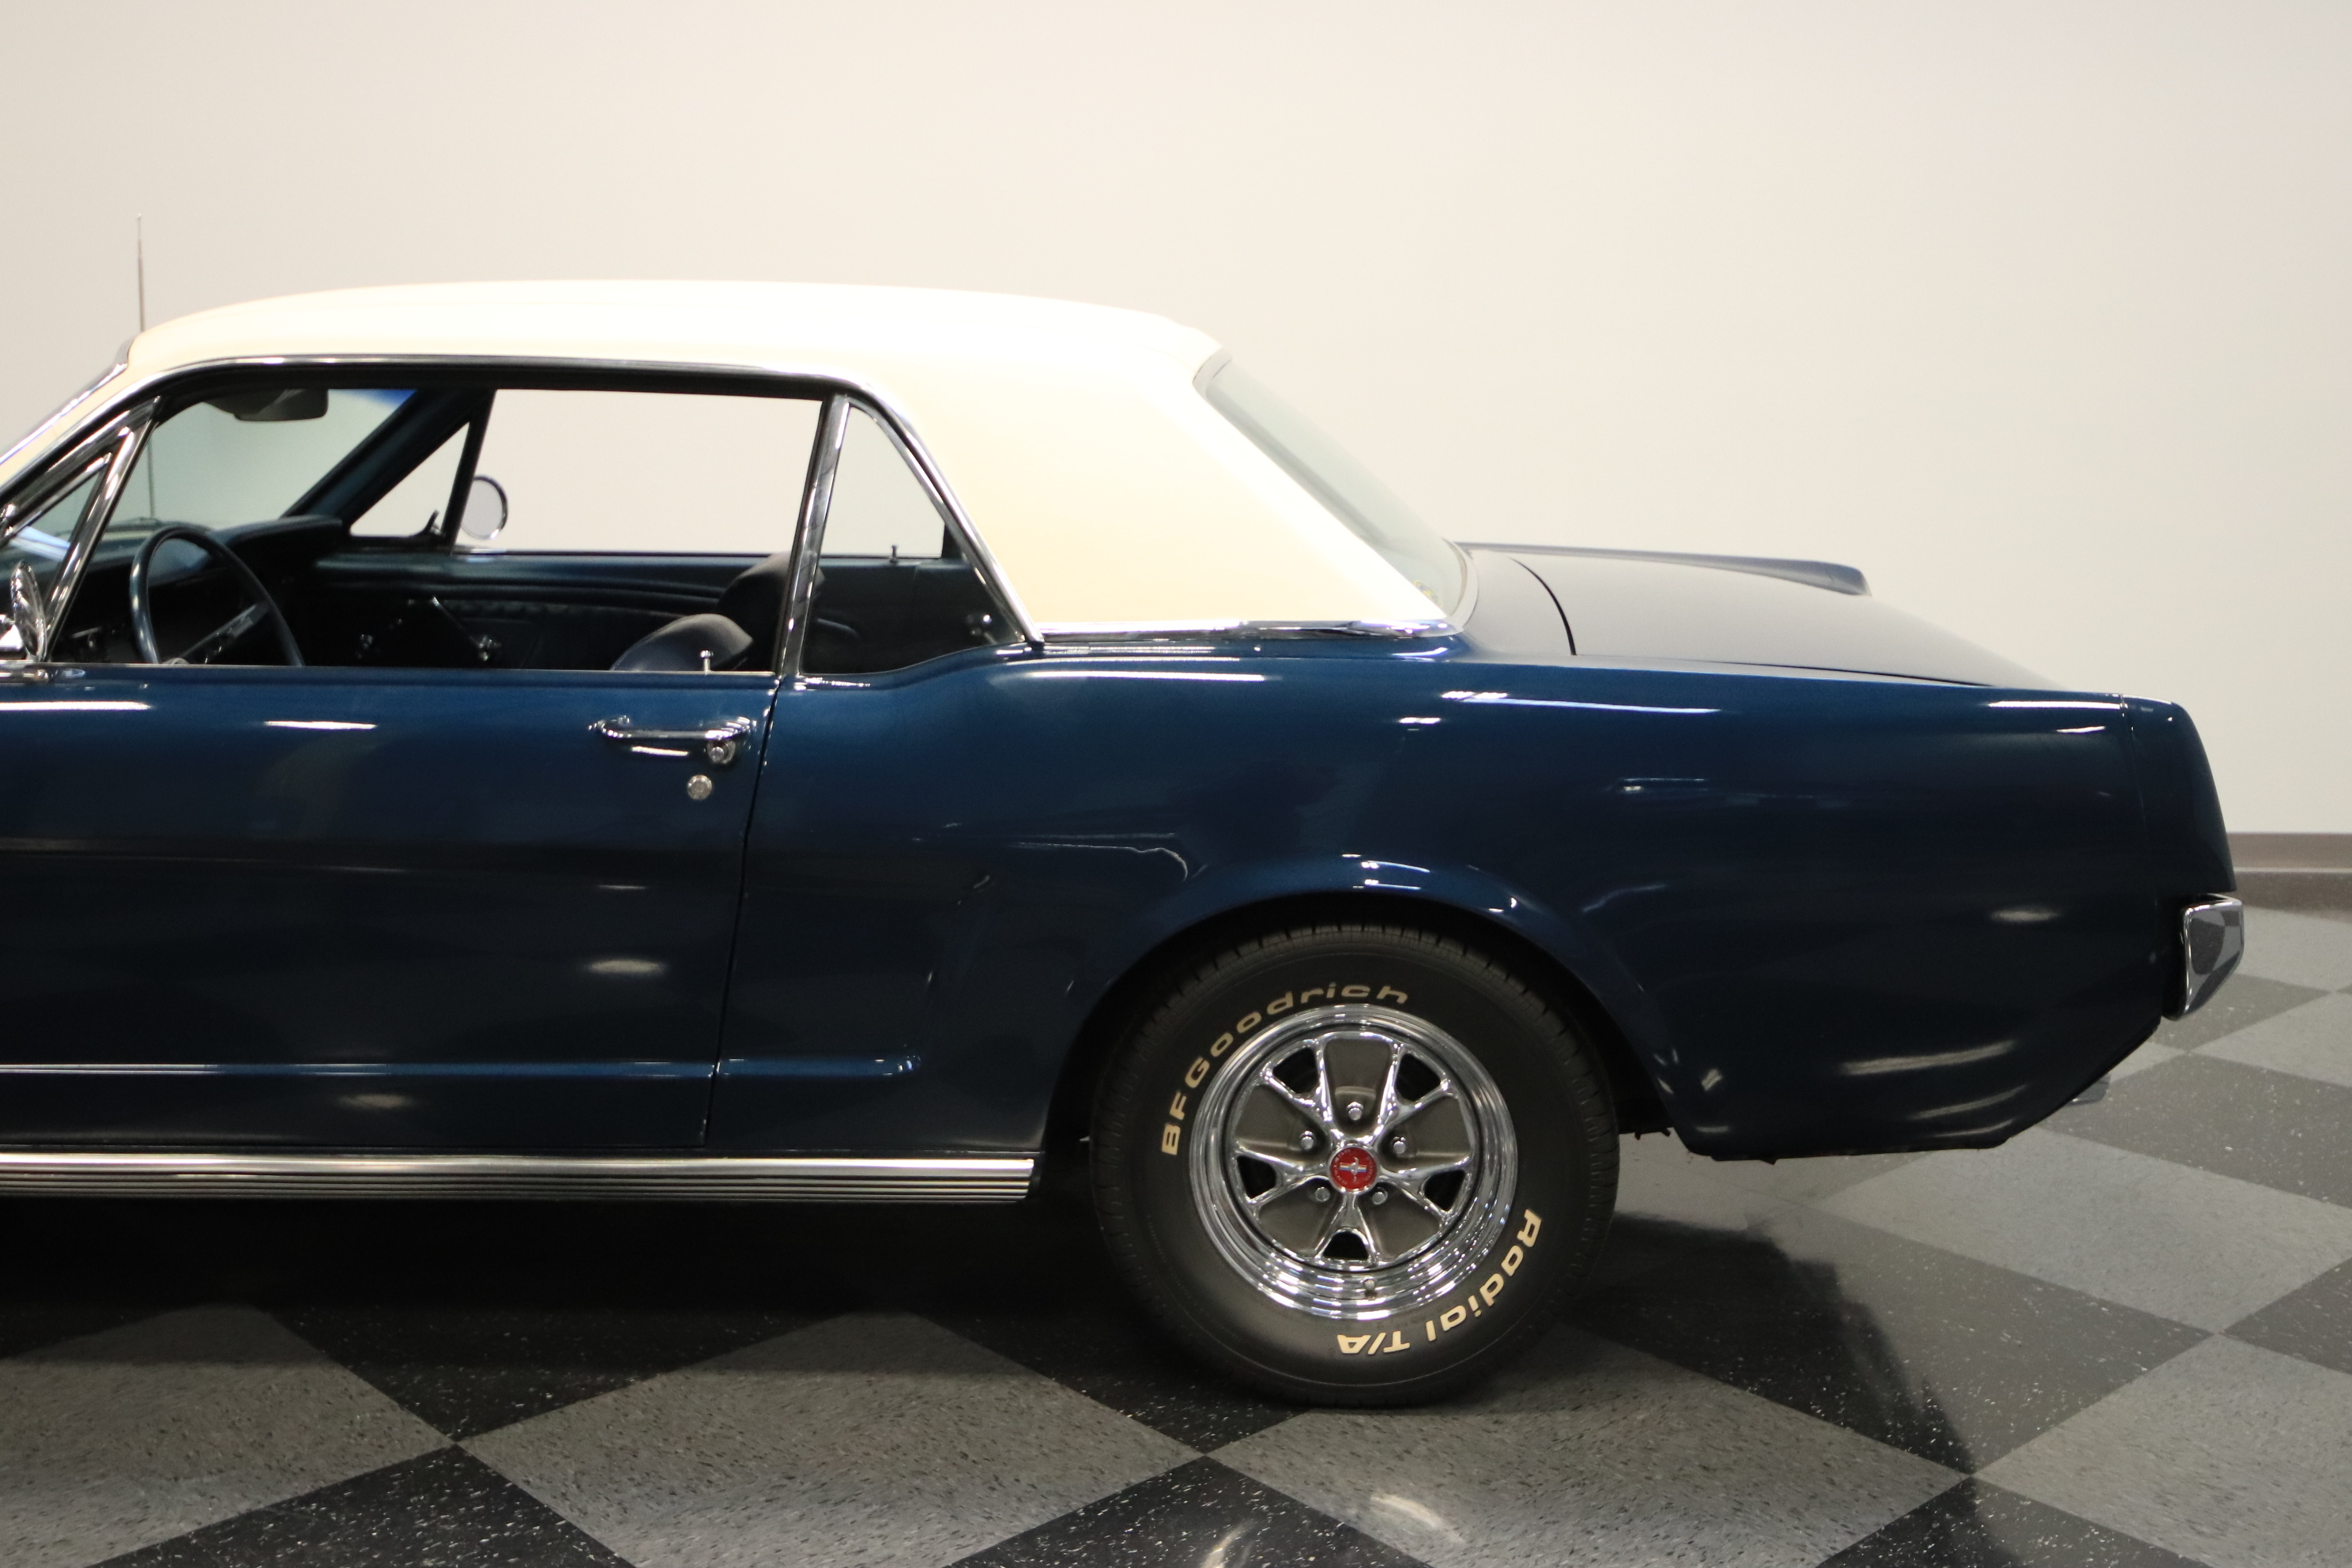 1965 Ford Mustang K-Code: #'S MATCH K-CODE 289, CORRECT COLORS, WELL-RESTORED CAR, VERY RARE, SLICK PAINT!